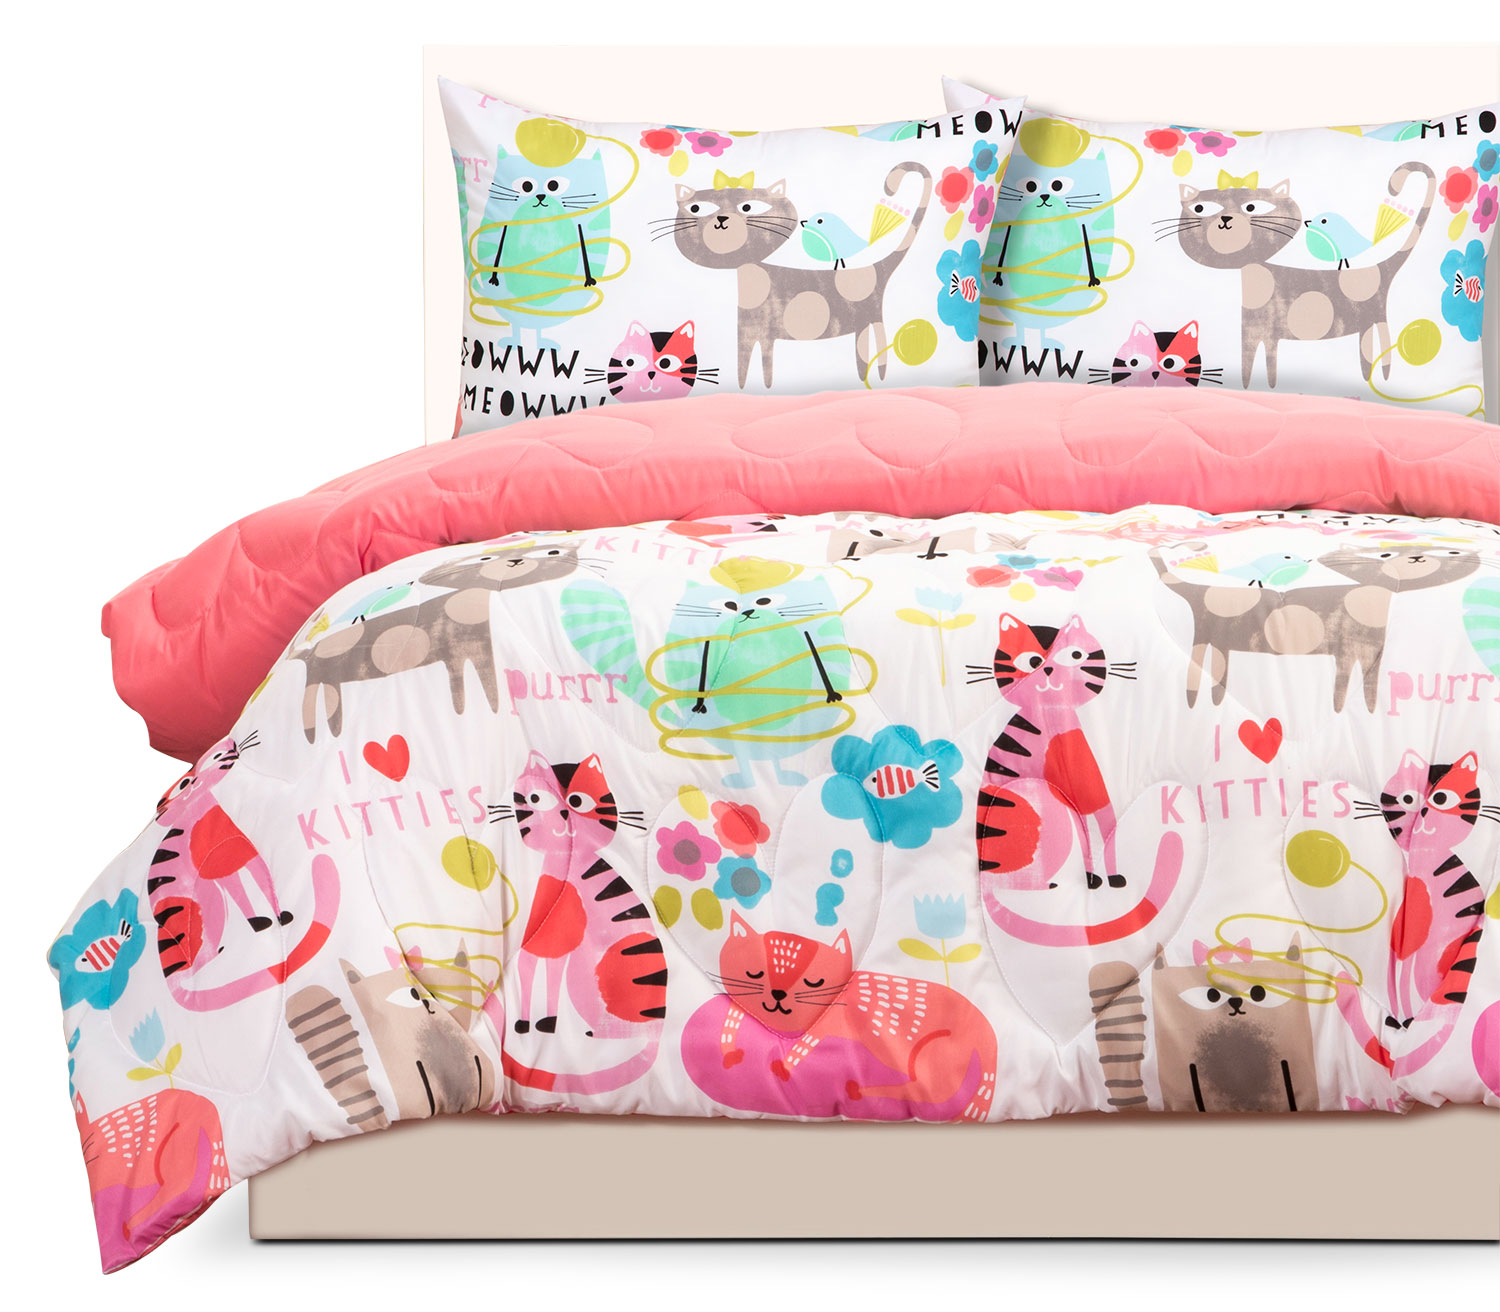 Purrty Cat 2-Piece Twin Comforter Set